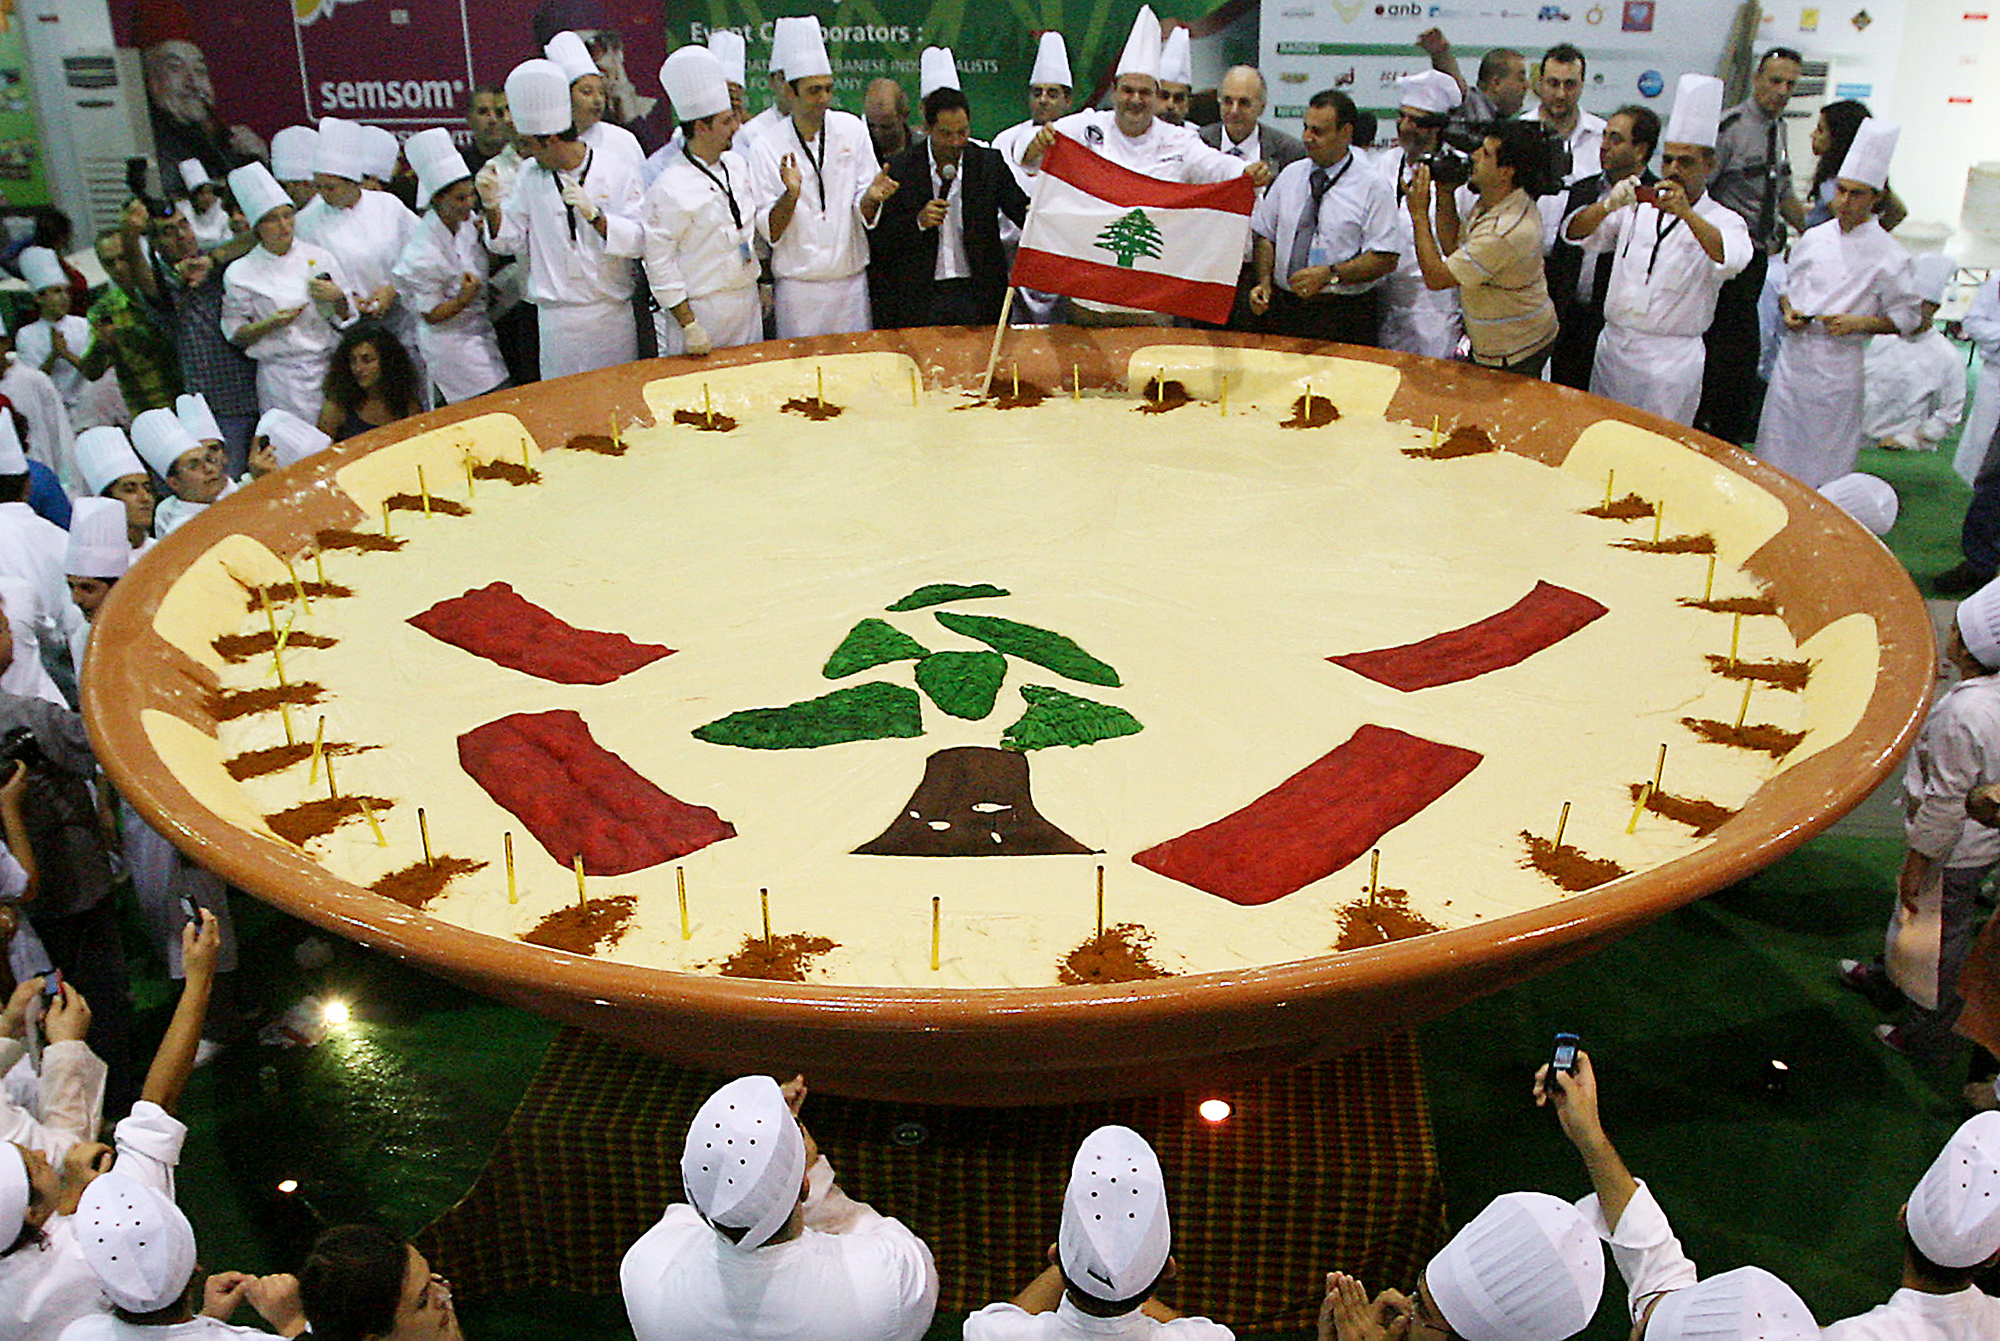 Lebanese chefs celebrate in Beirut after setting a new Guinness record for what was then the biggest tub of hummus in the world — weighing over 2 tons — in October 2009. The world record effort was part of Lebanon's bid to claim hummus as its own.